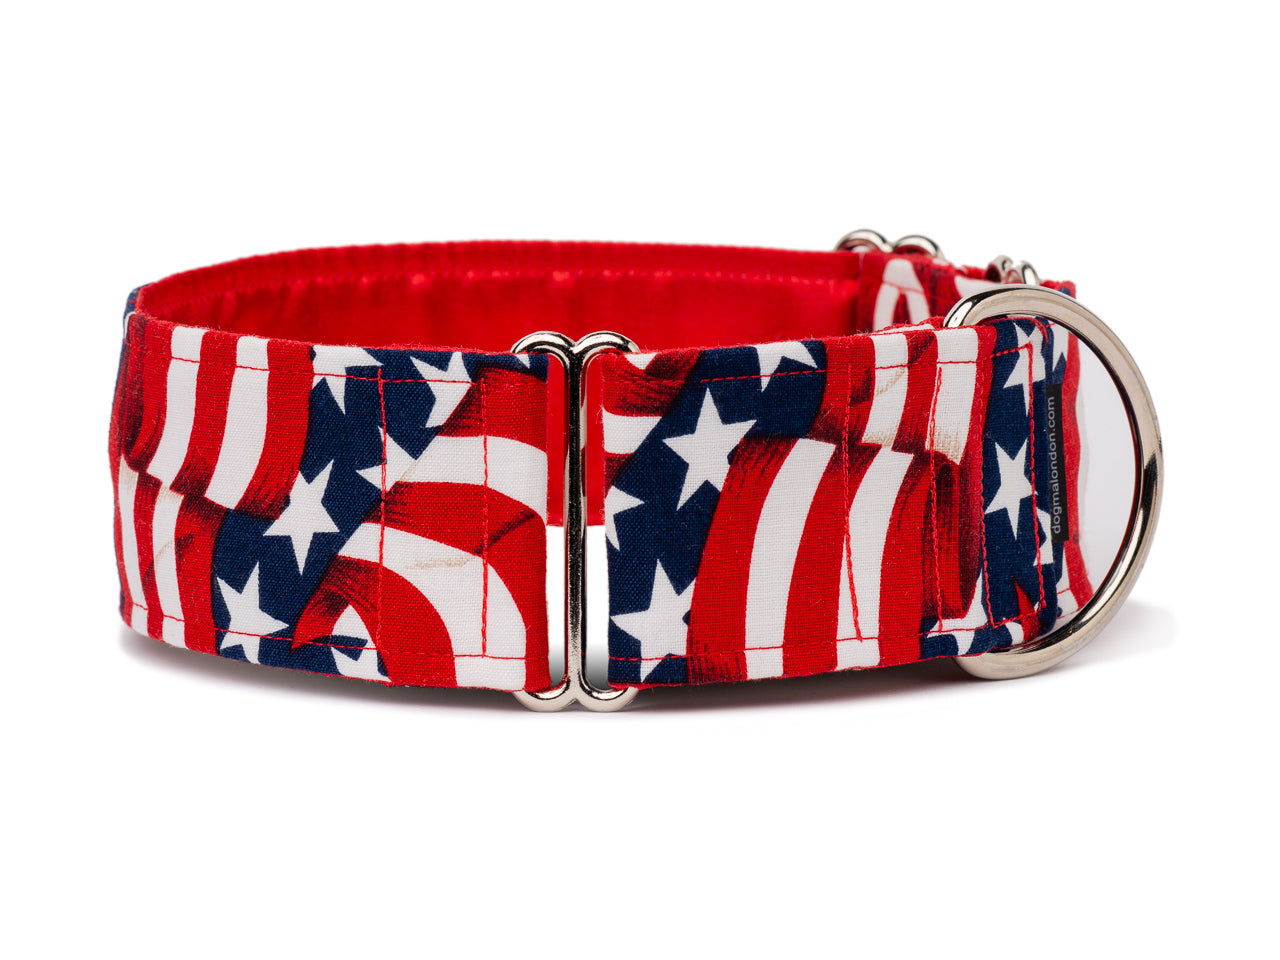 Waving ribbons of red and white and stars on fields of blue are a must for any patriotic American pooch! Perfect for July 4th, Memorial Day, or any time your pup is feeling festive!